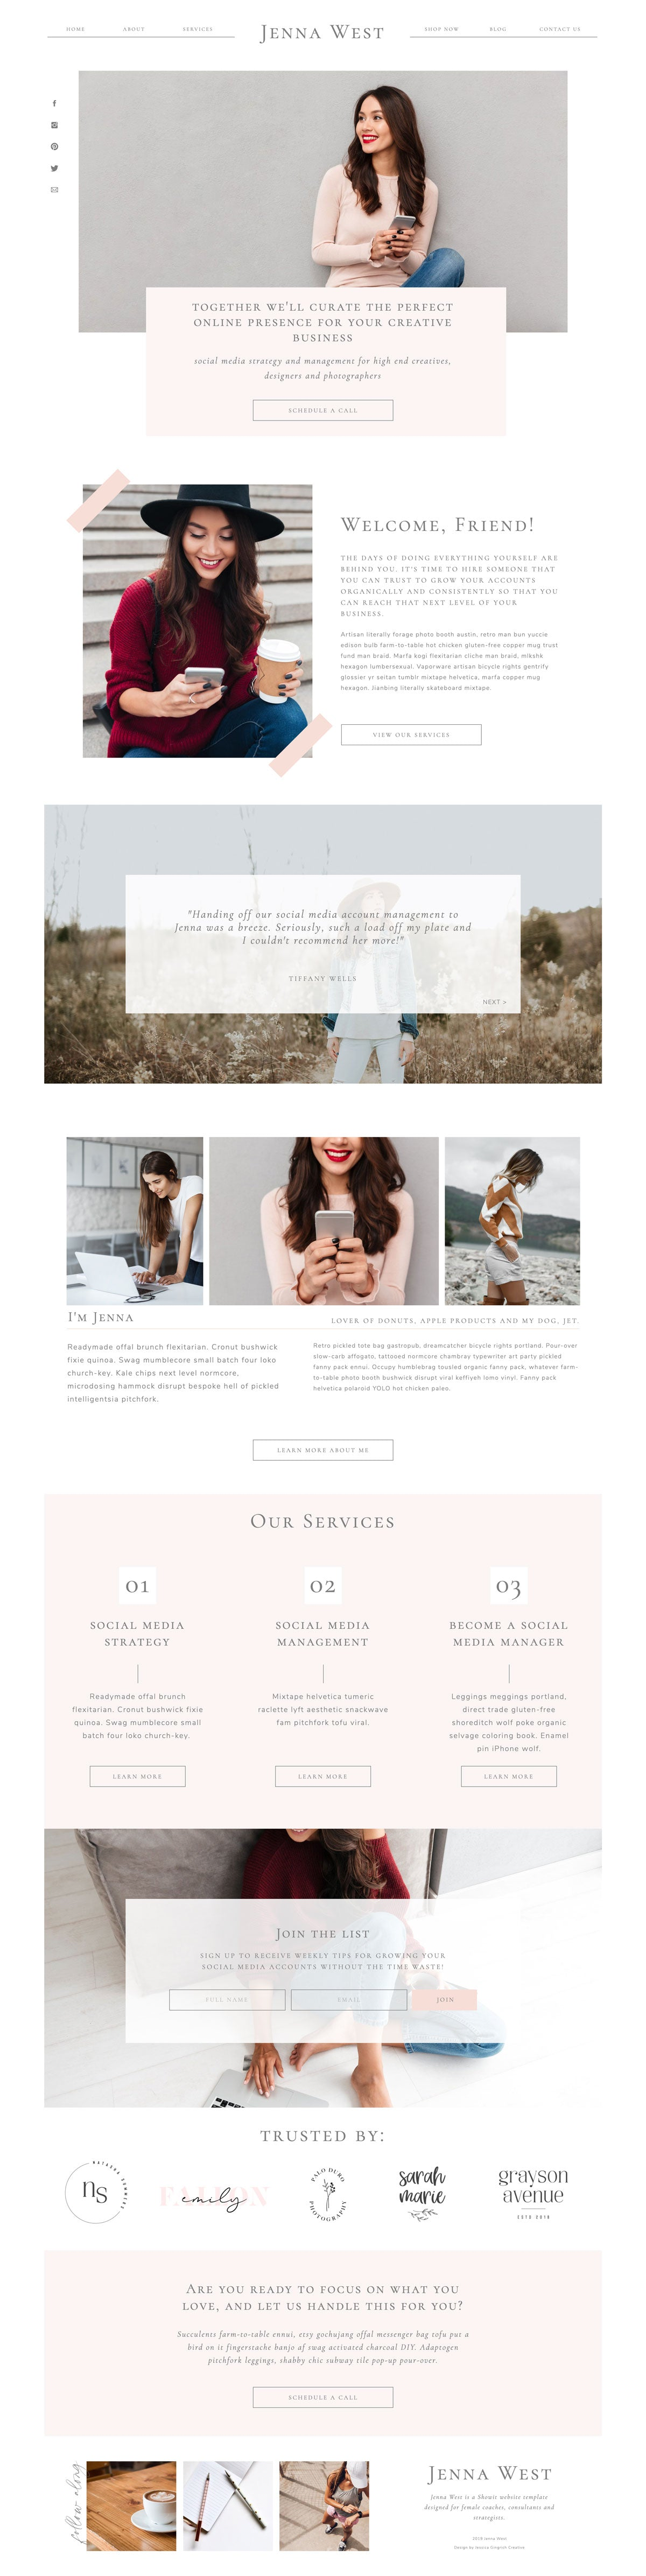 """Jenna West"" Showit Template - jessica gingrich"